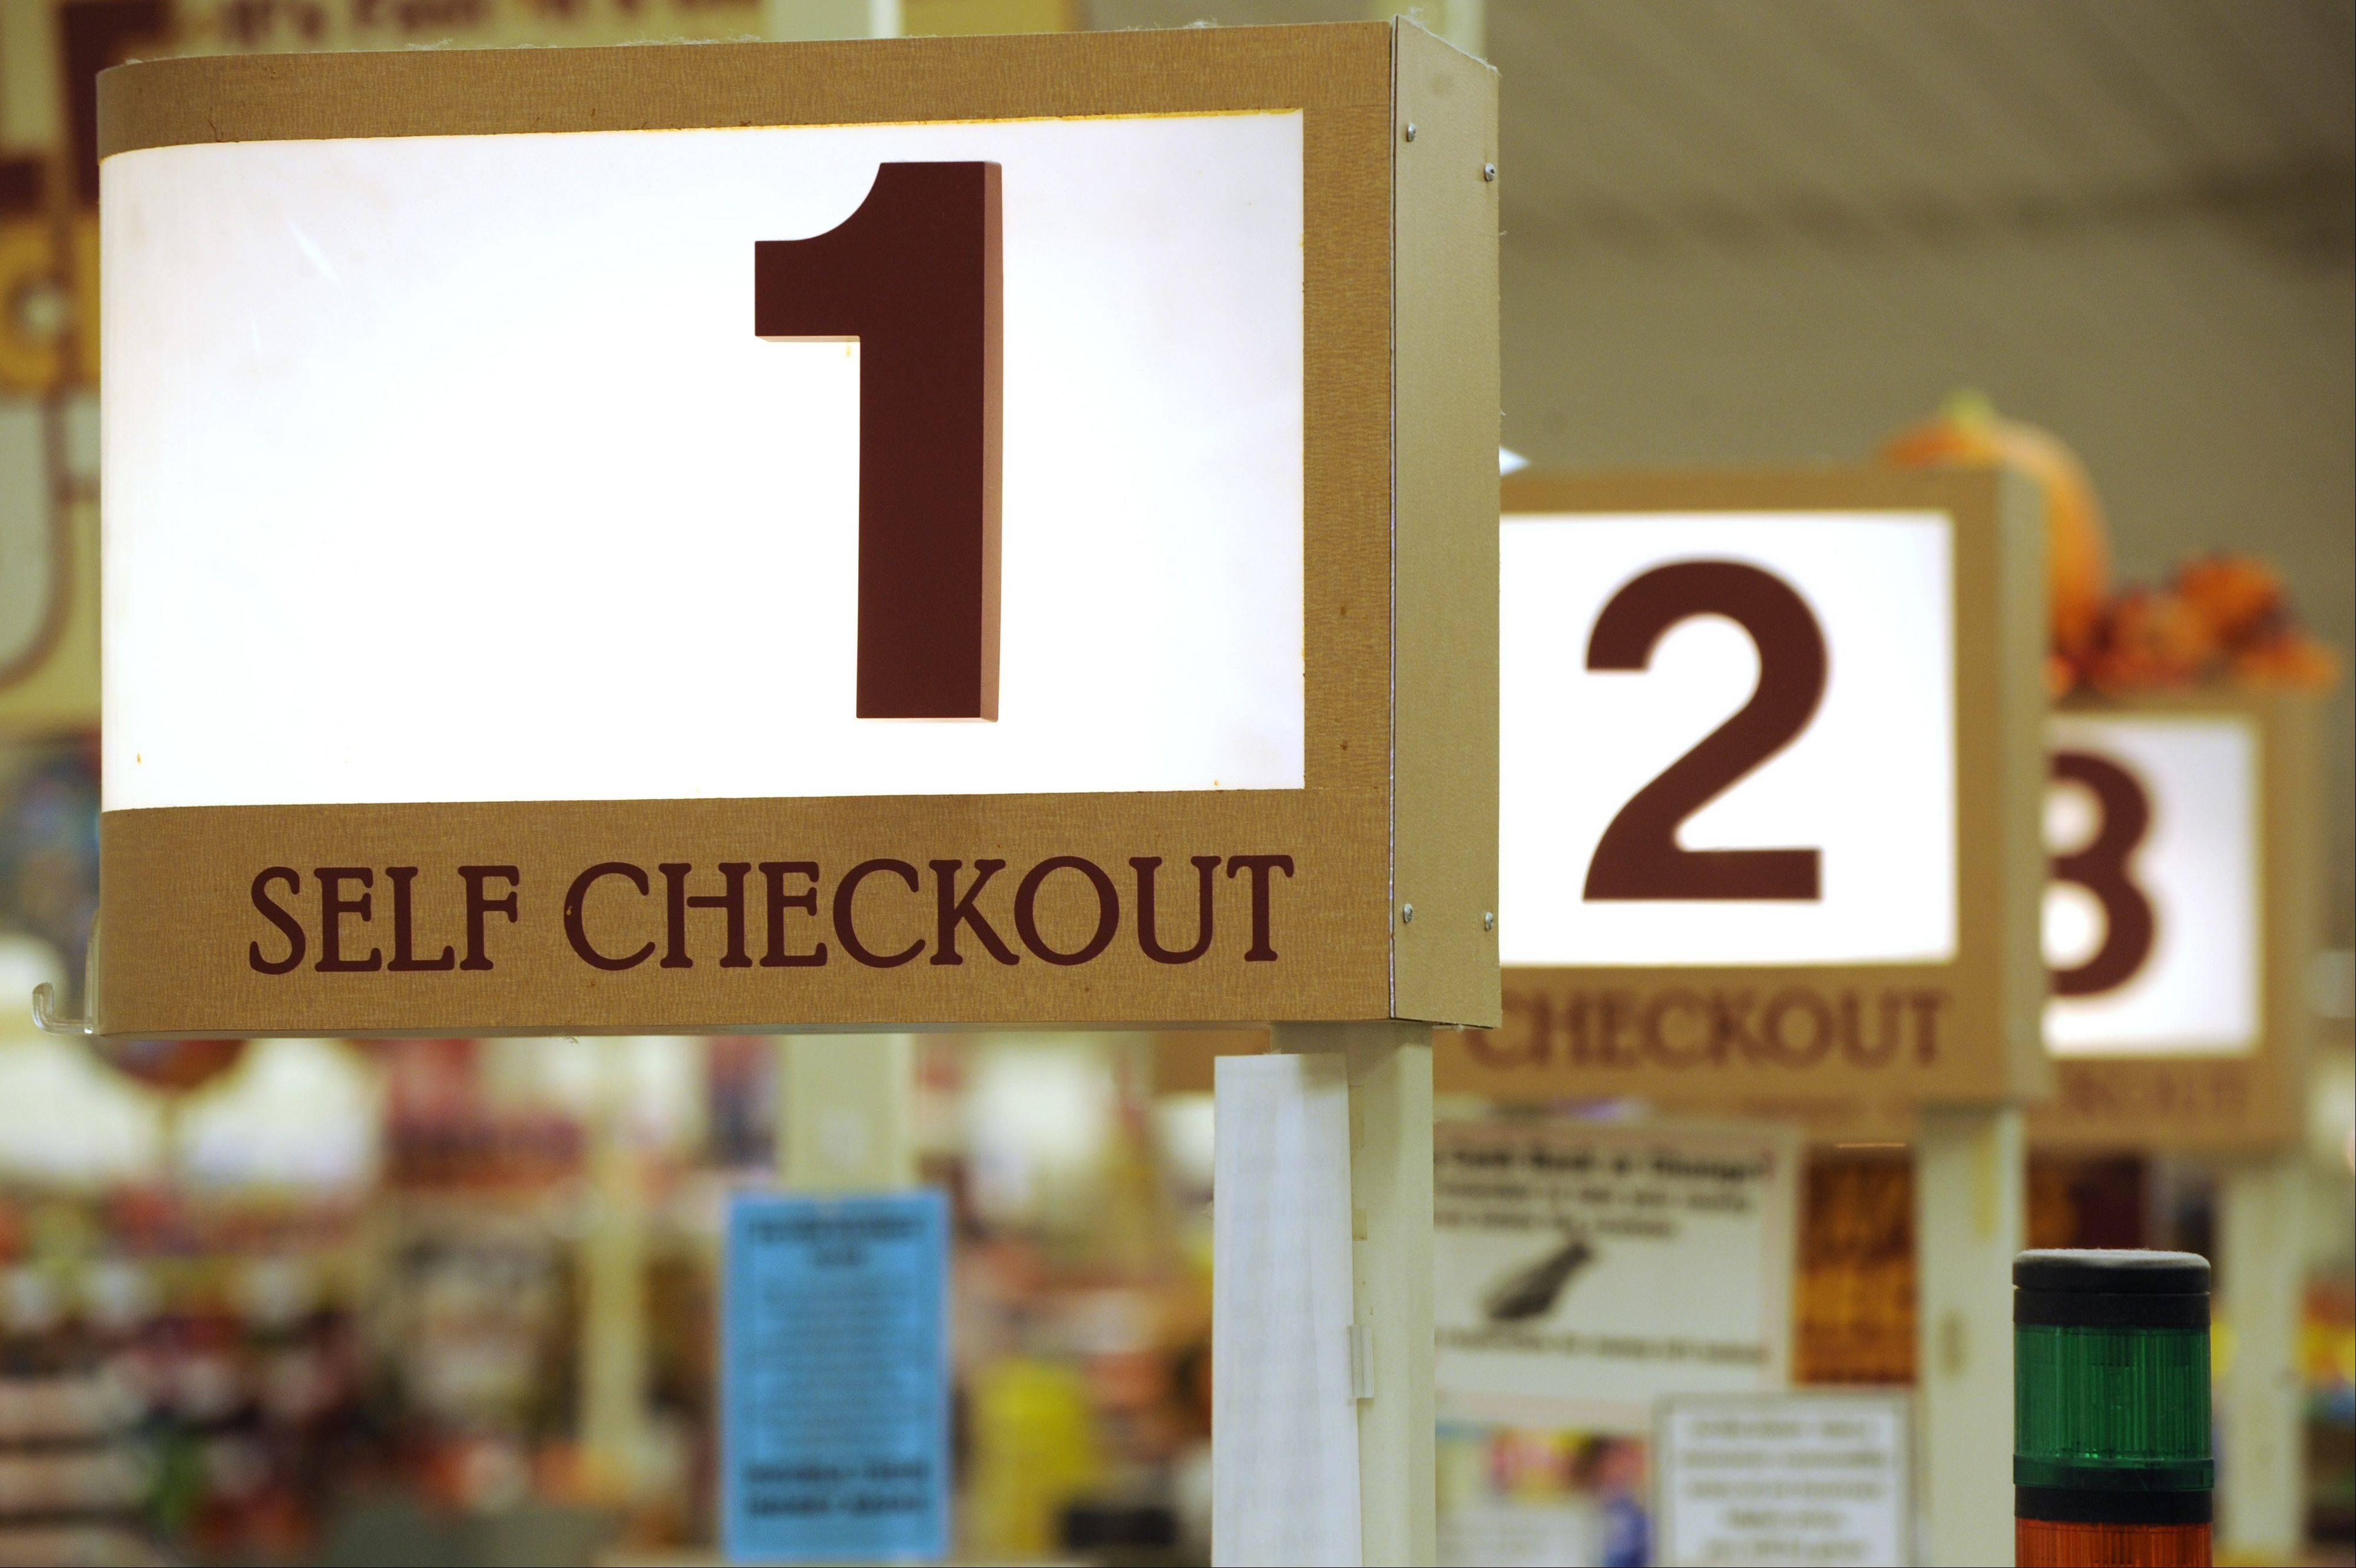 A growing number of supermarket chains are bagging their self-serve checkout lanes, saying they can offer better customer service when clerks help shoppers directly.